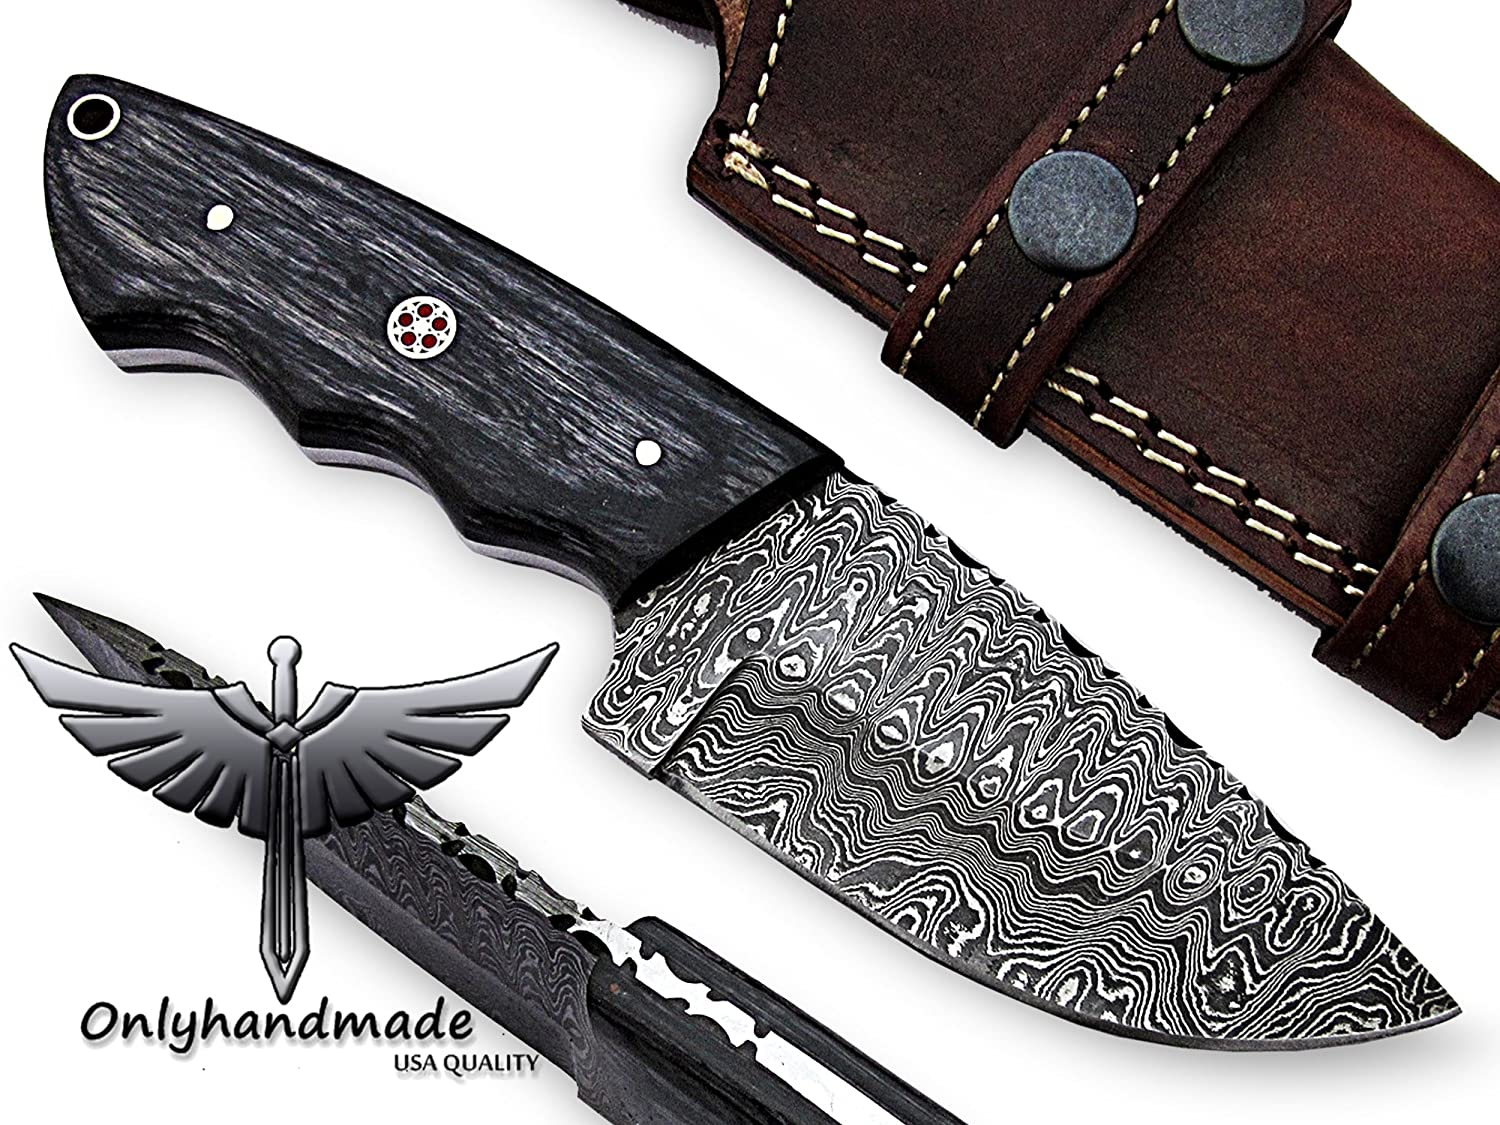 onlyhandmade 7.75 Beautiful Damascus Knife Made of Remarkable Damascus Steel and Exotic Wood -Its A Hunting Knife with Sheath OHM-058